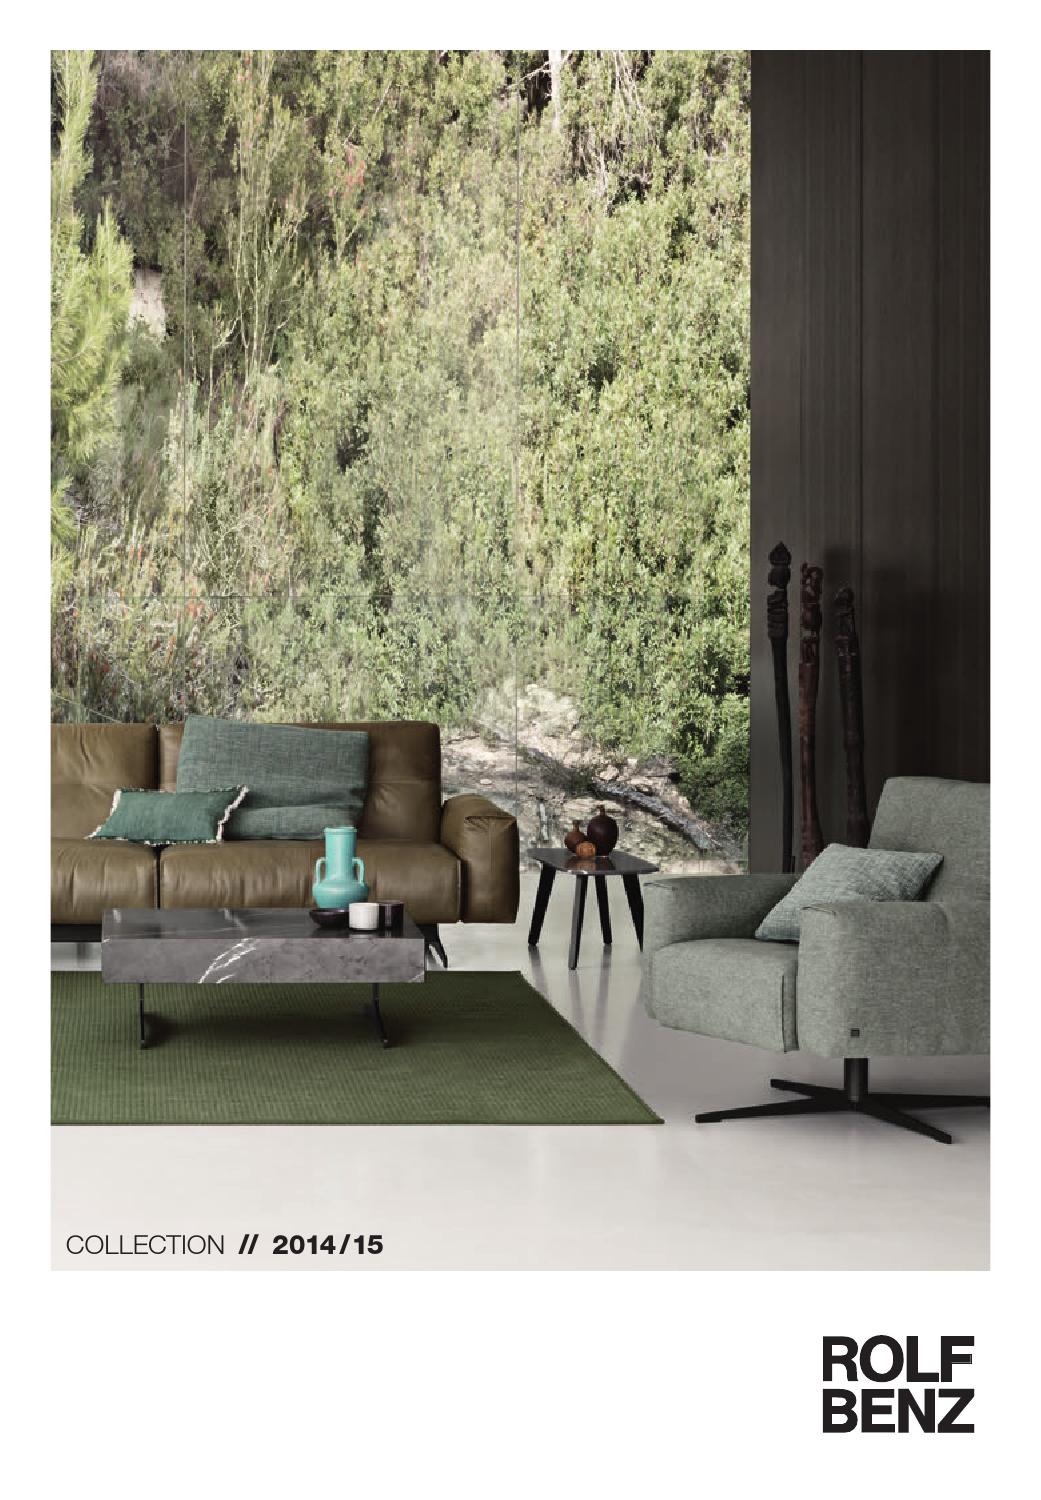 rolf benz katalog 2015 by bwa holding ag issuu. Black Bedroom Furniture Sets. Home Design Ideas